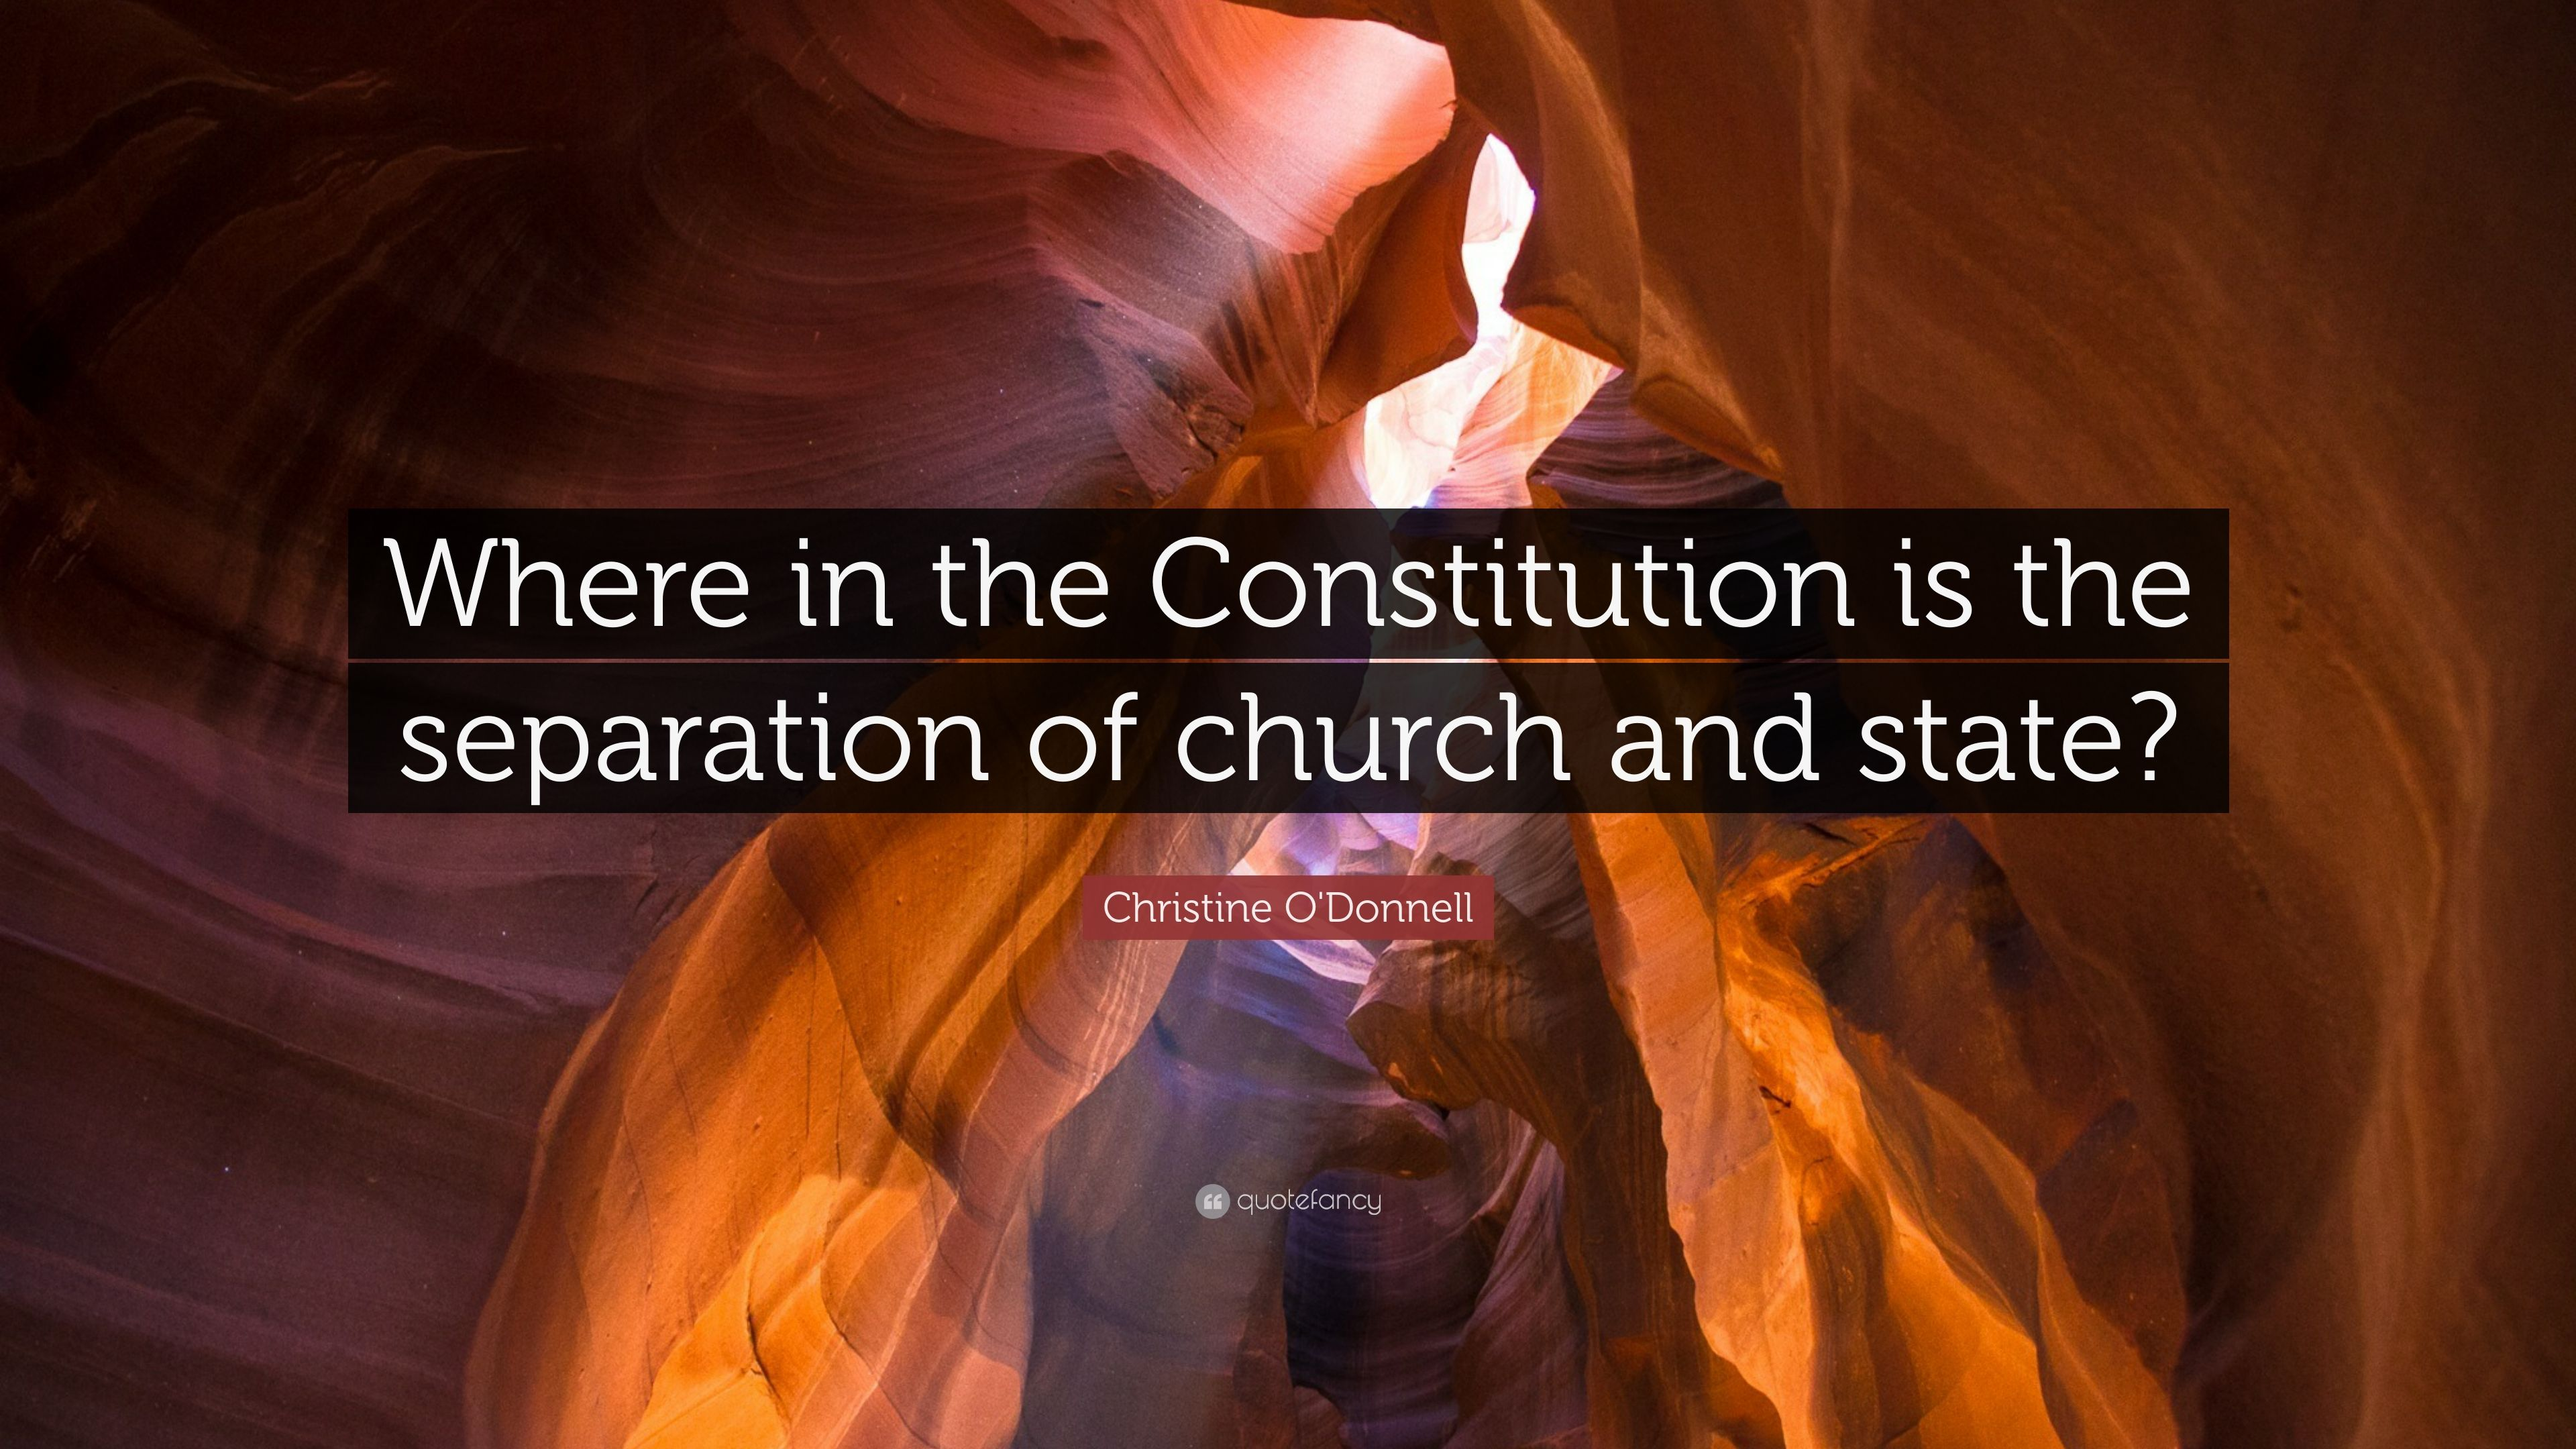 church and state essays Separation of church and state essayseparation of church and state freedom of religion was established in the first amendment.